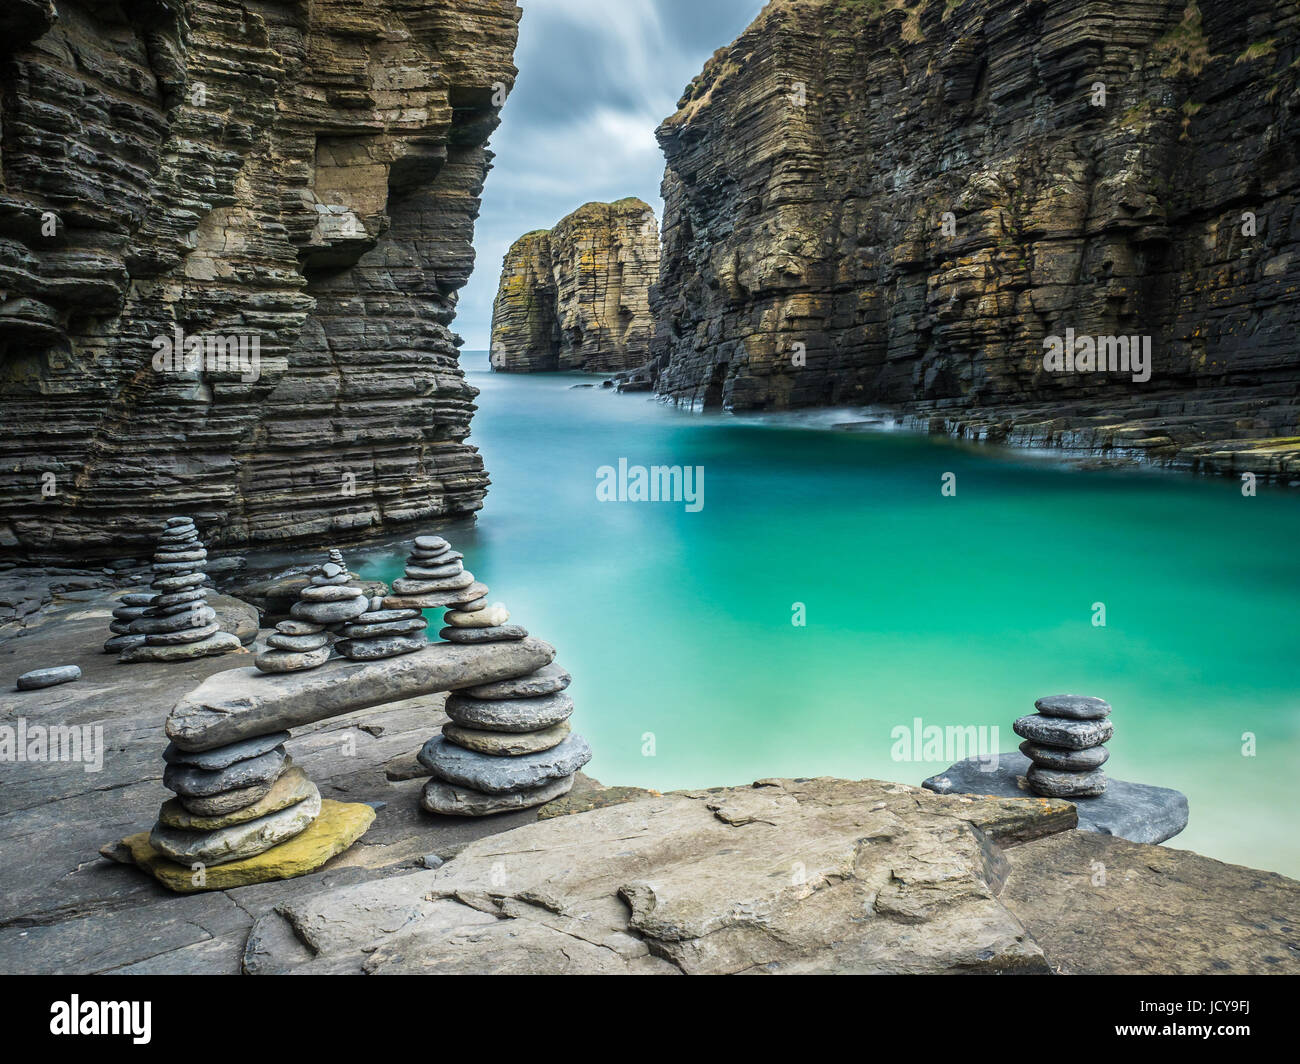 Cairns formed from stacks of pebbles beside turquoise seawater in a natural harbour below Sinclair Girnigoe Castle Stock Photo